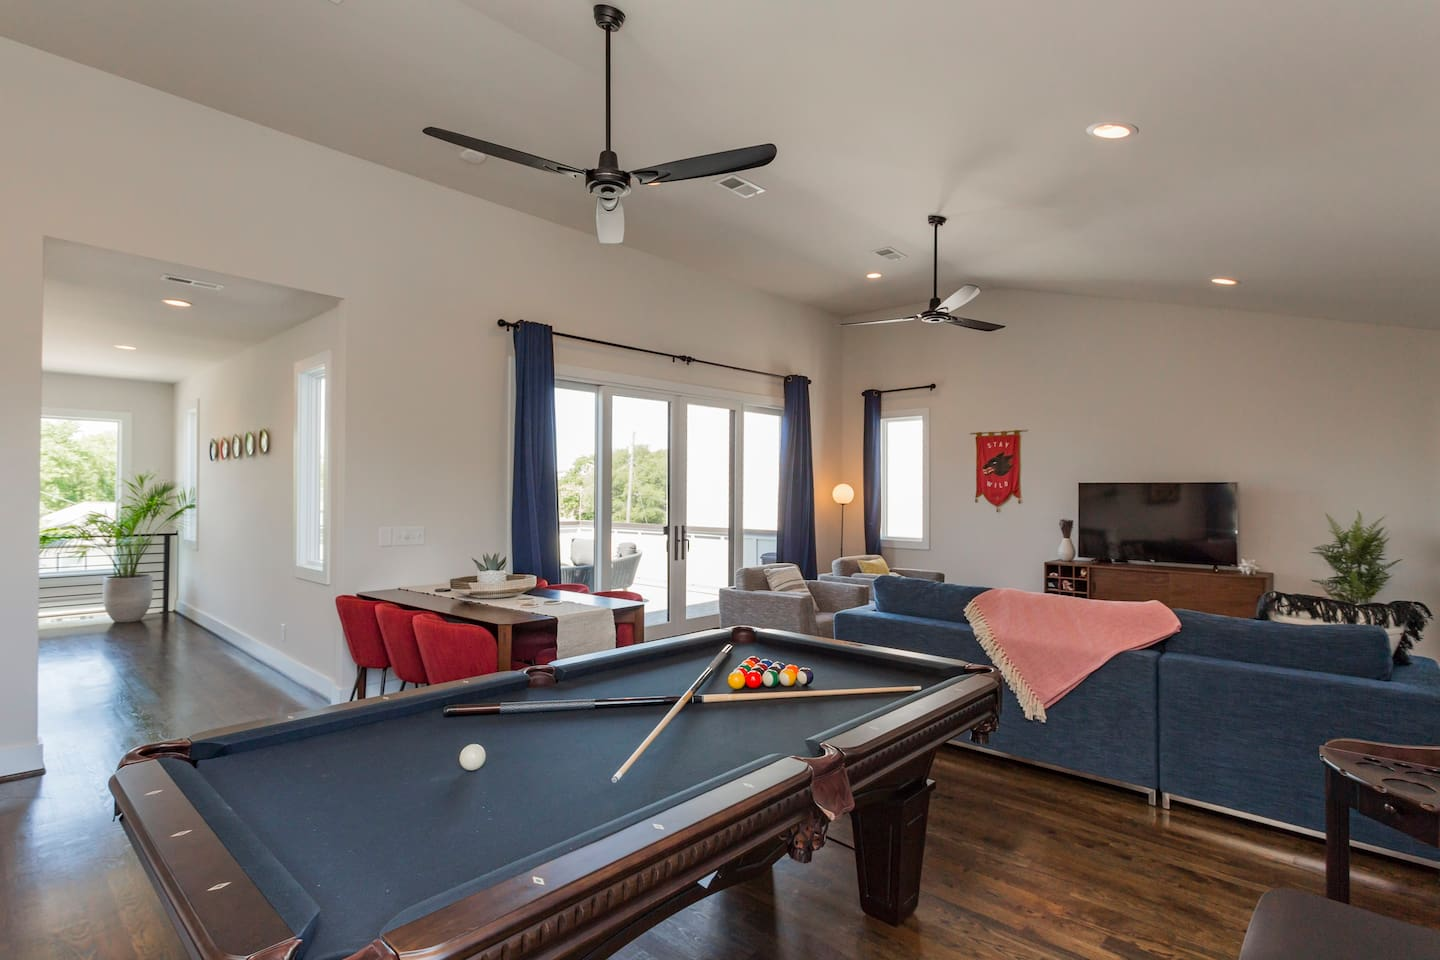 Huge Downtown Luxury Home W Pool Table Rooftop Houses For Rent - Huge pool table